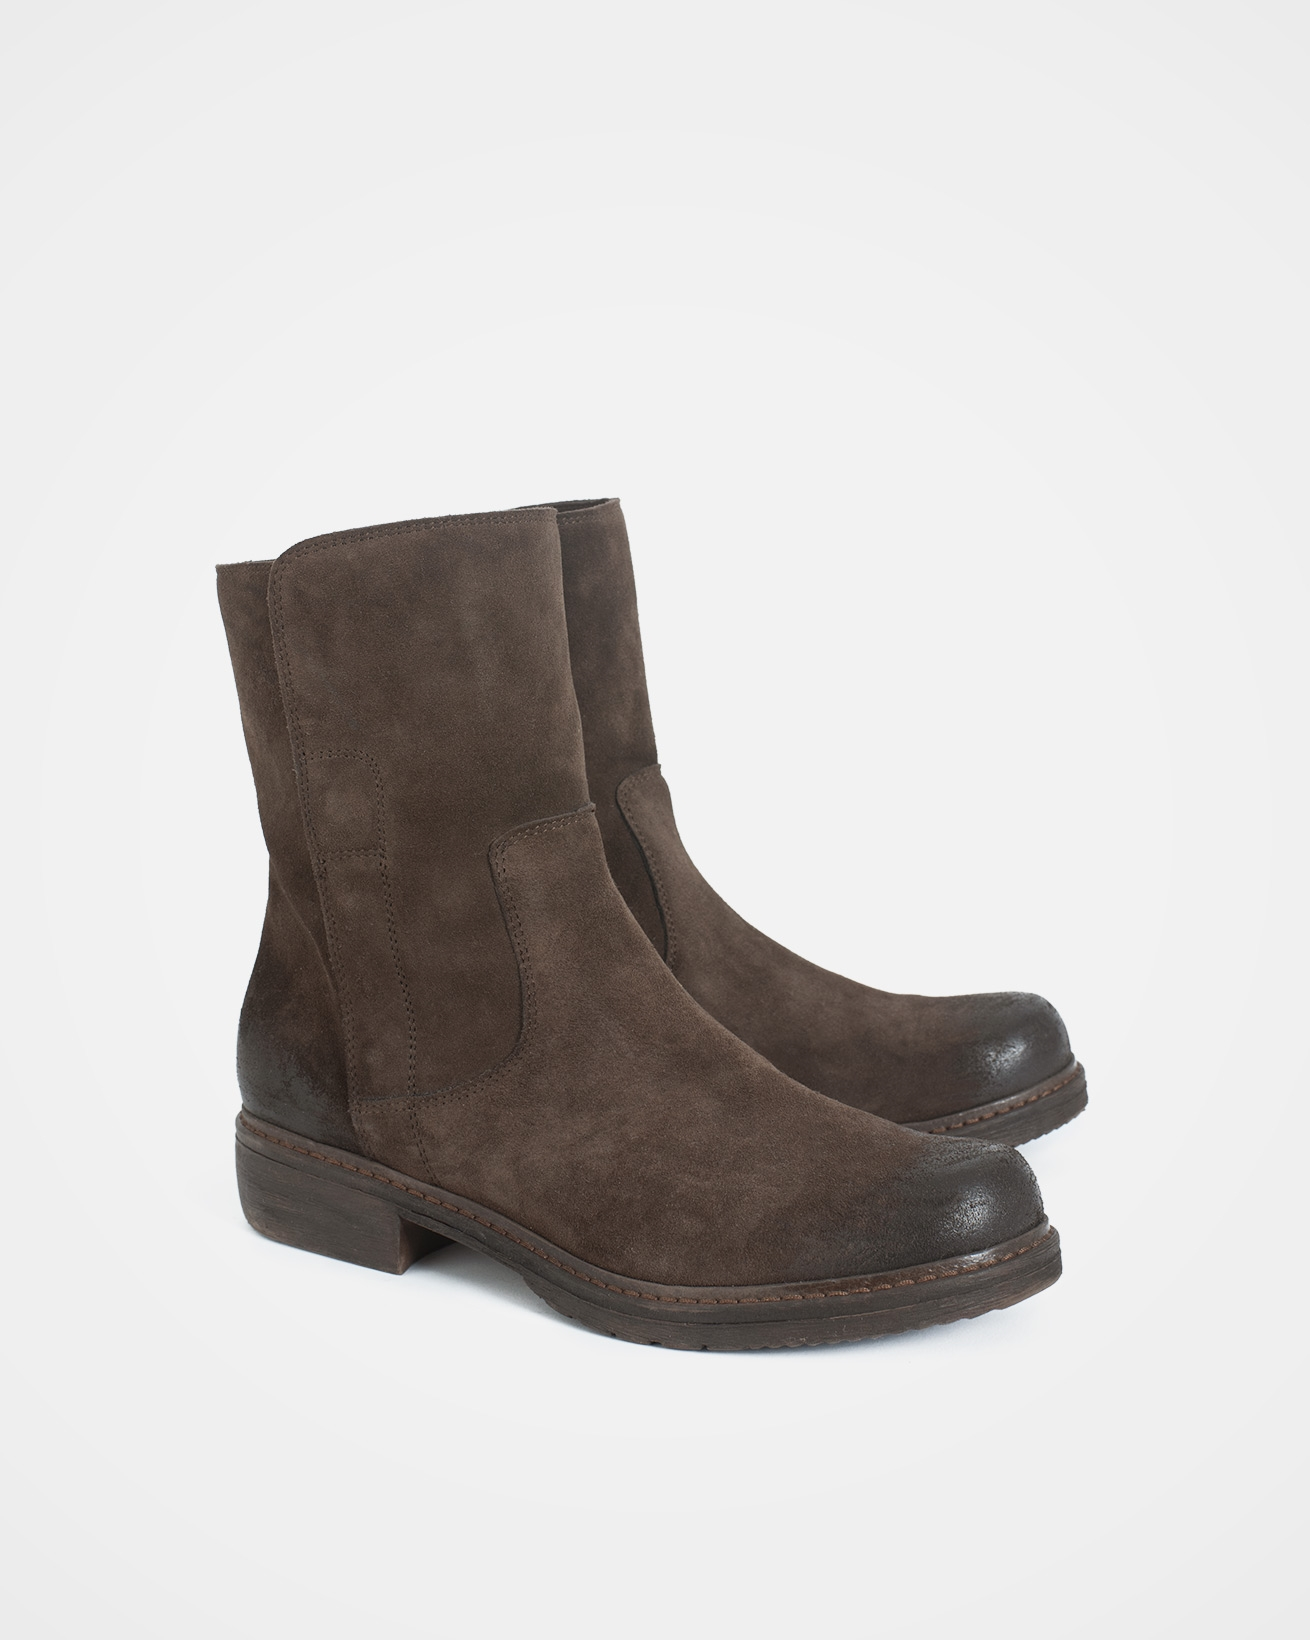 Essential leather ankle boots - Size 37 - Chocolate - 1741